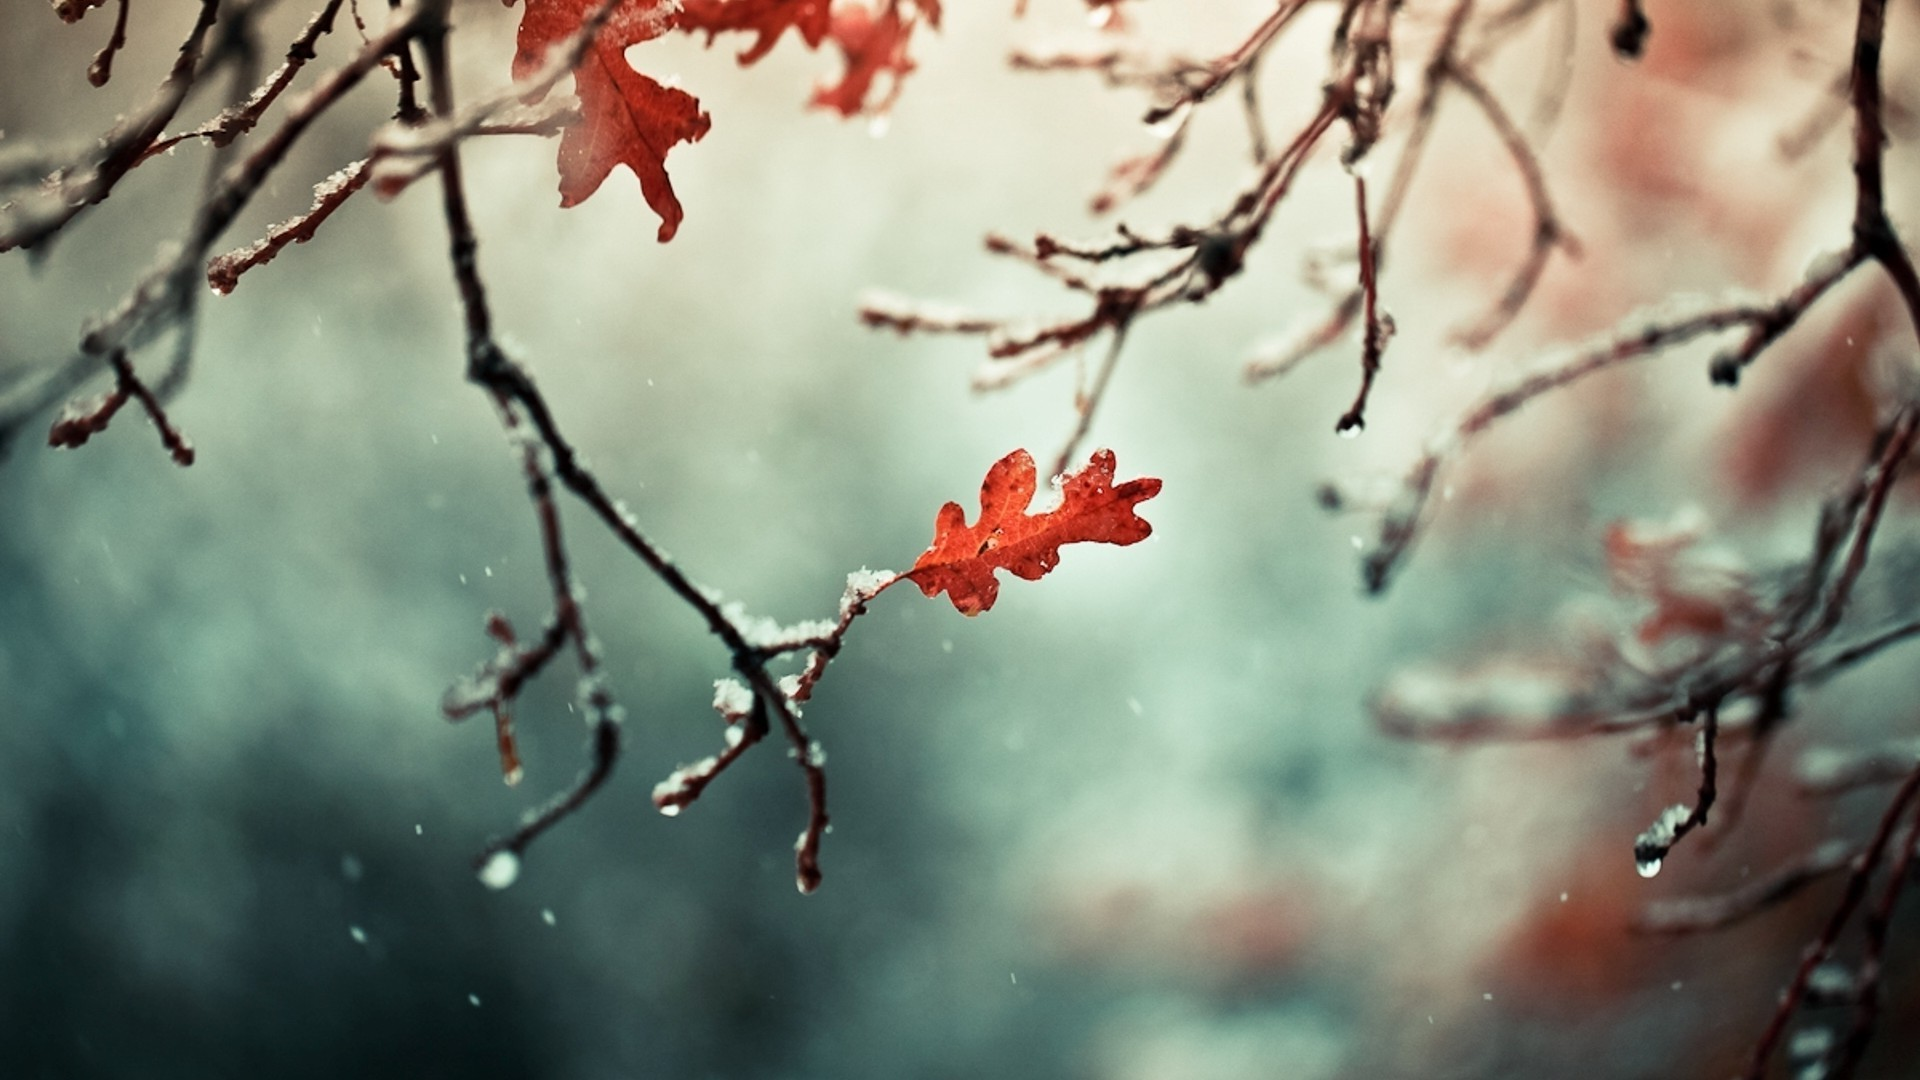 Frosty Fall Leaves Wallpaper Winter Nature Photography Leaves Wallpapers Hd